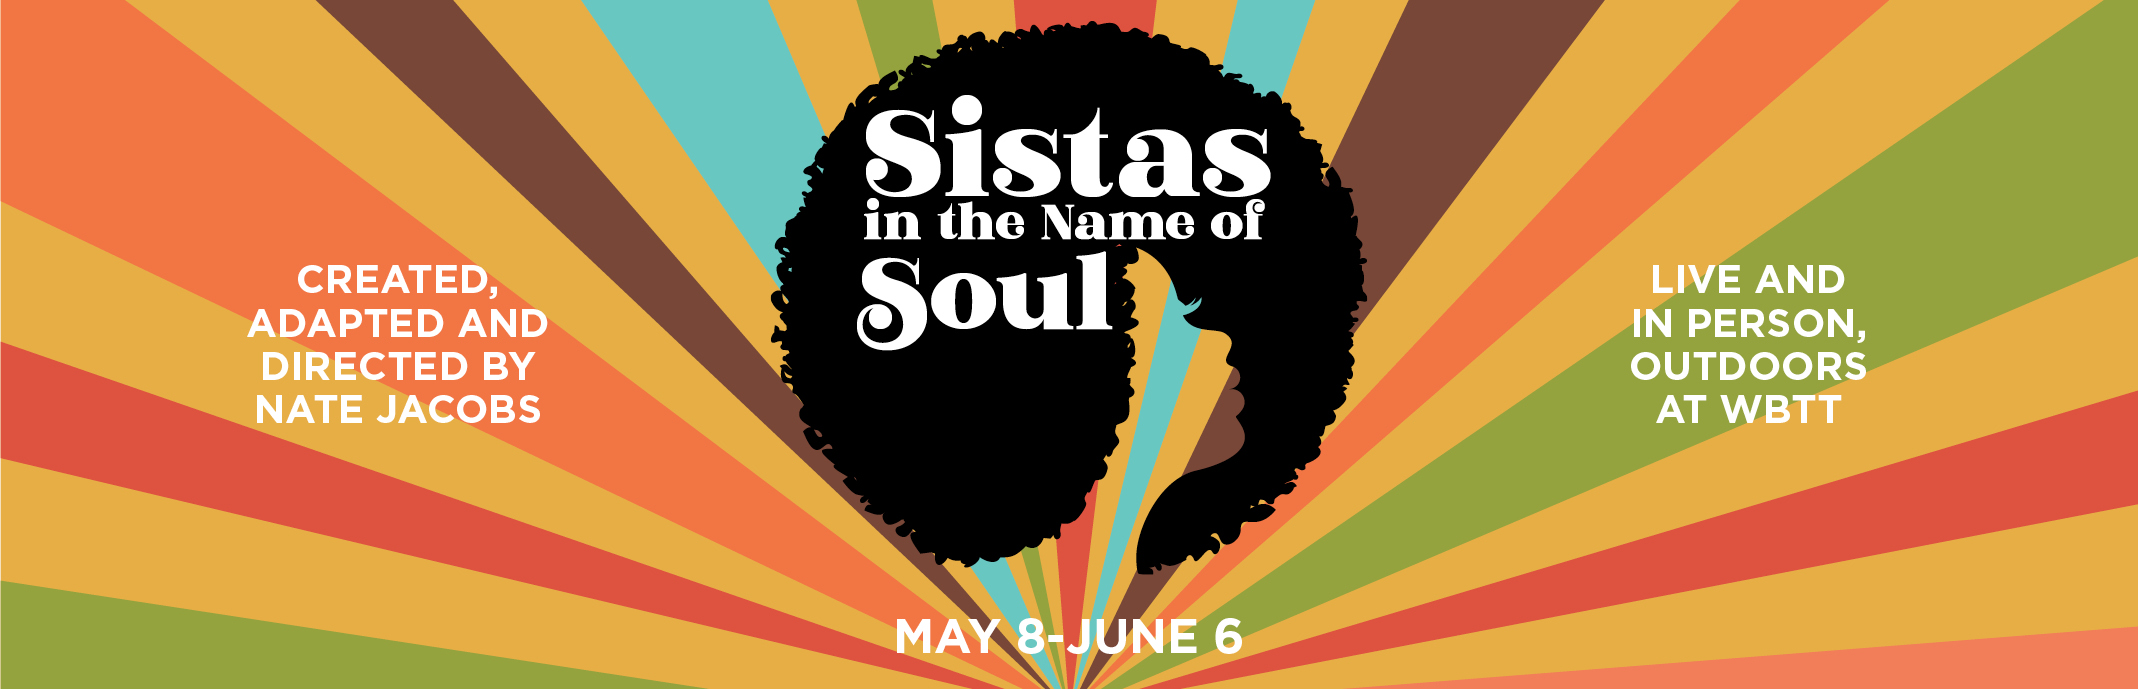 Sistas in the Name of Soul: May 8 - June 6, 2021